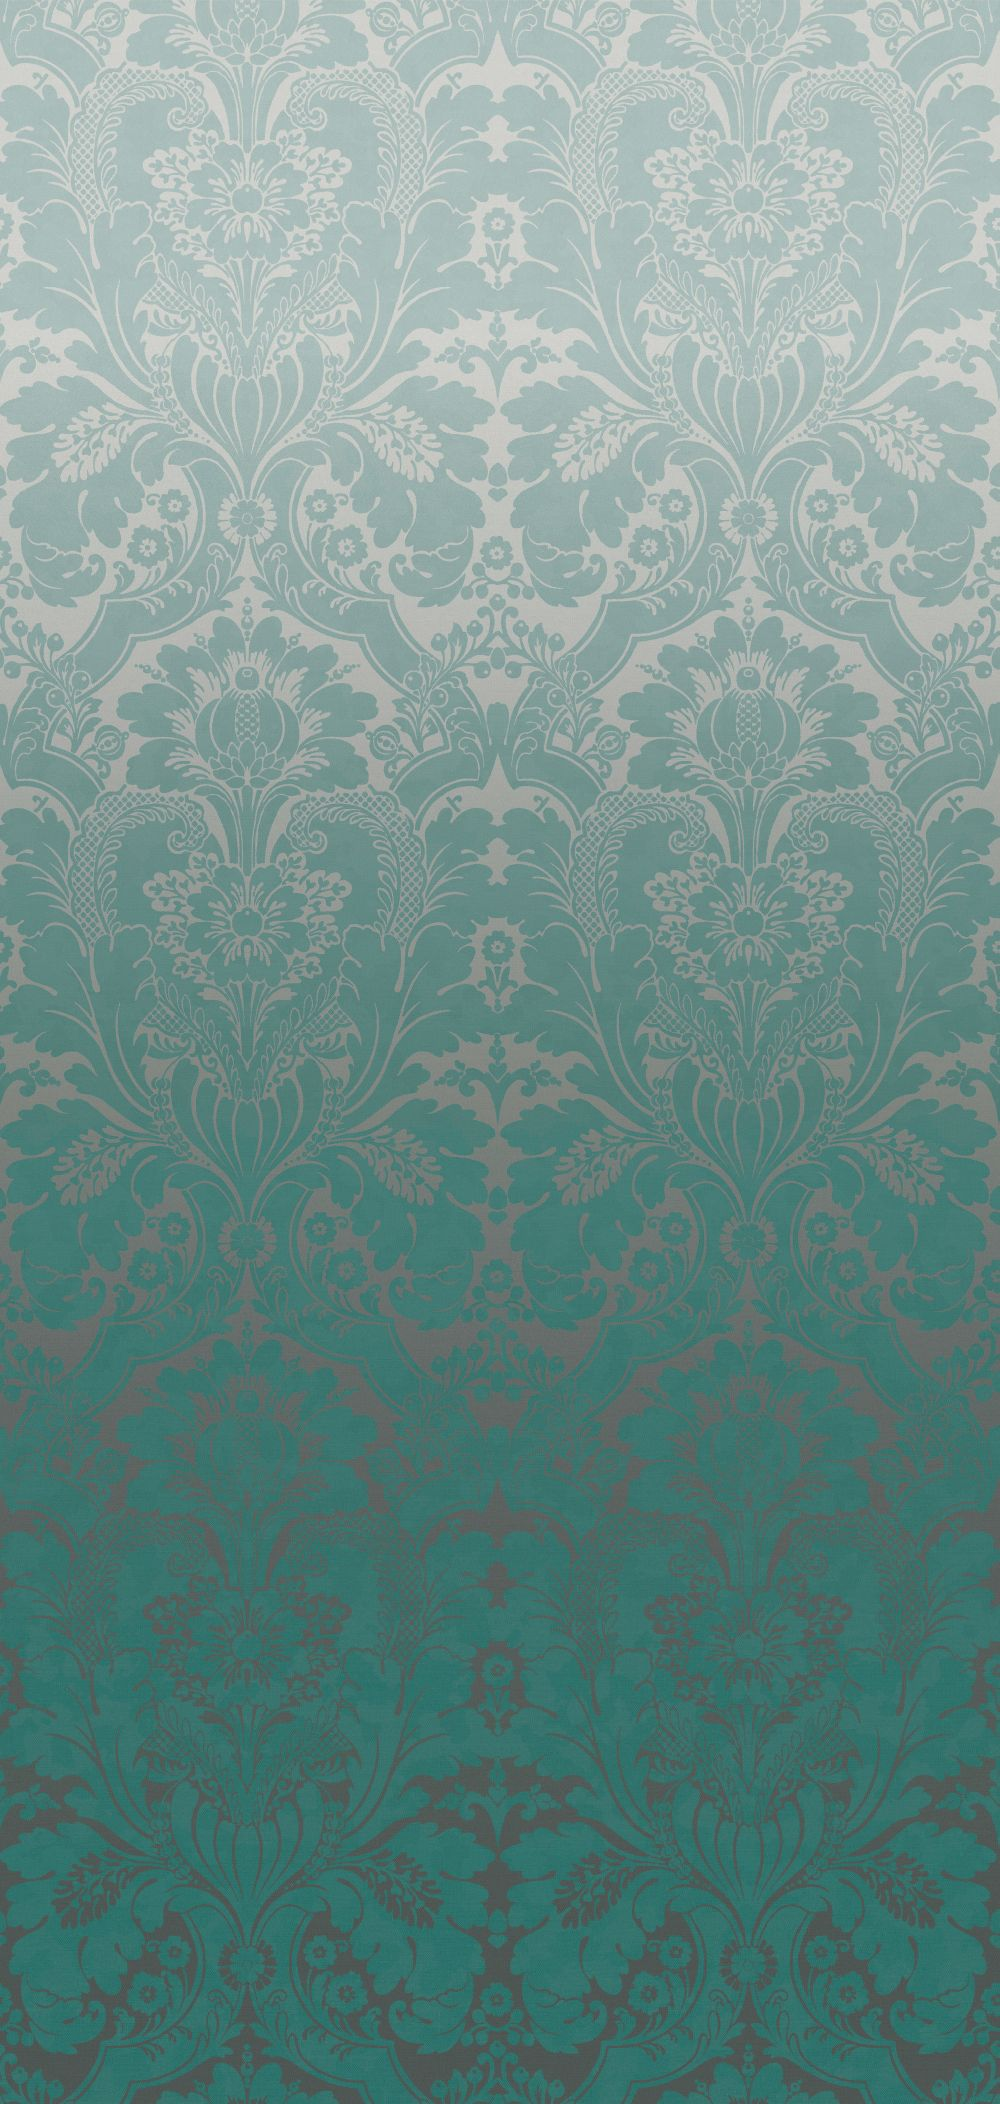 St James's Park Mural - Teal Fade - by Little Greene